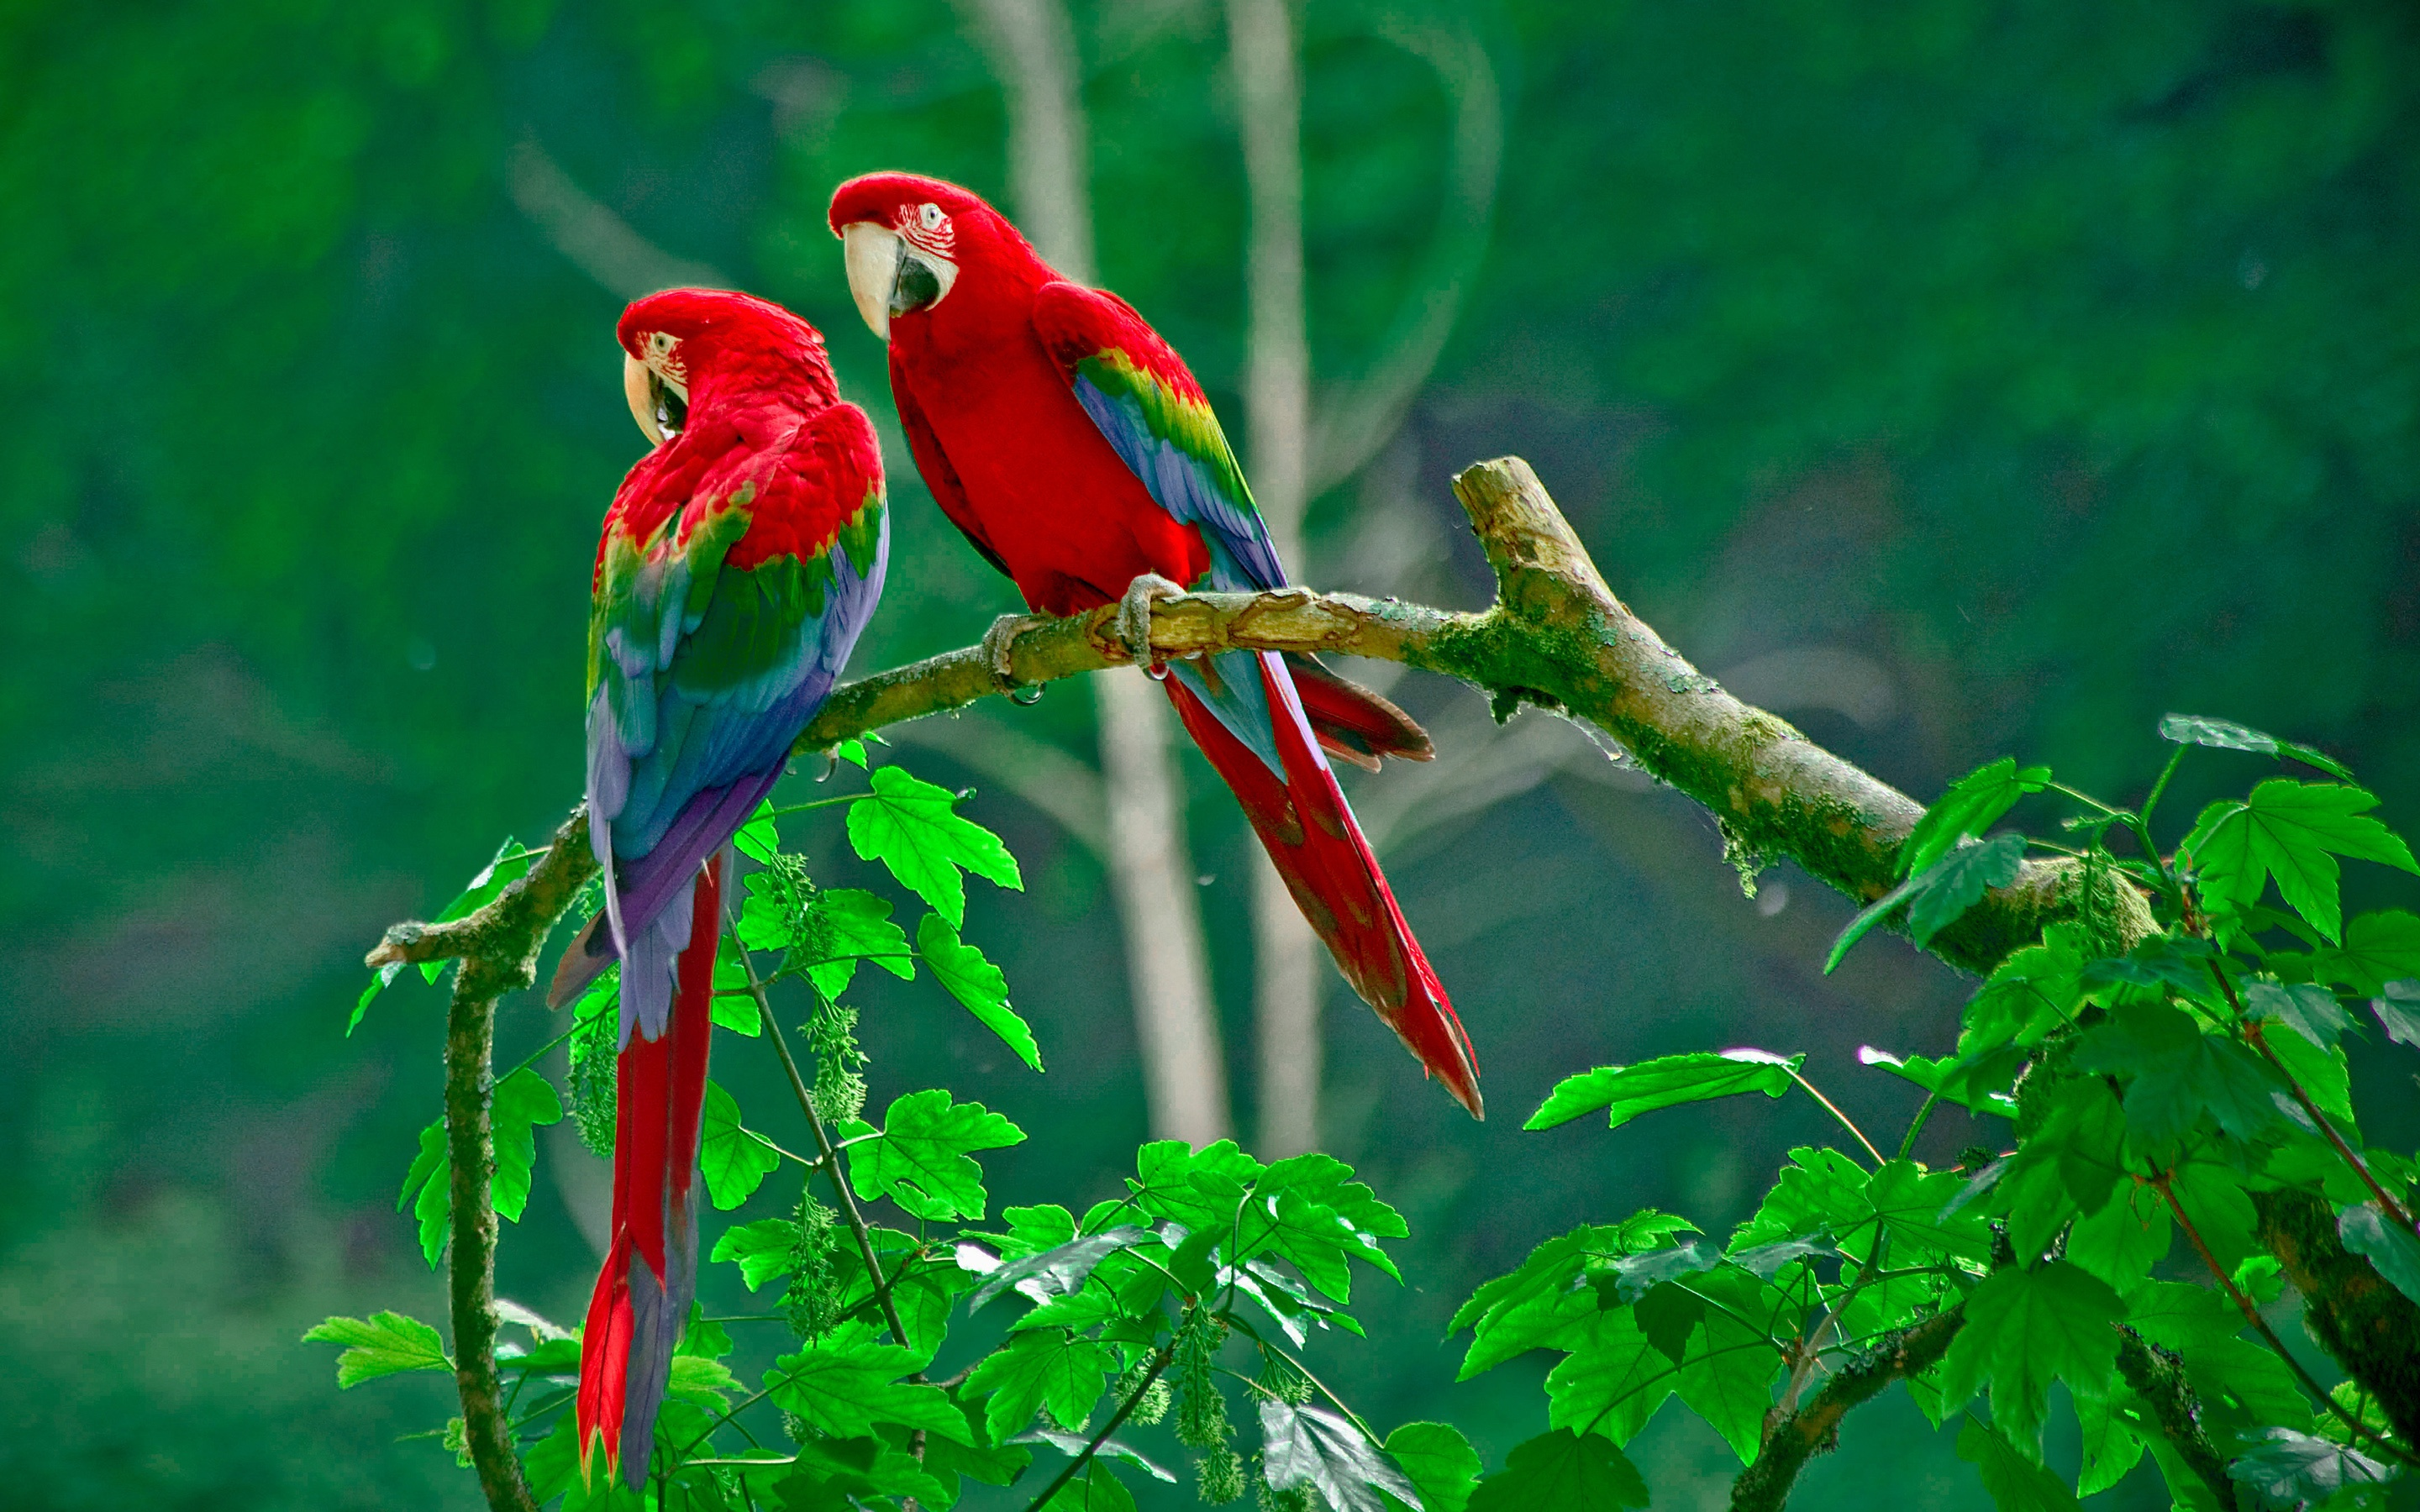 Parrots On Tree Branch In Rainforest Full HD Wallpaper And